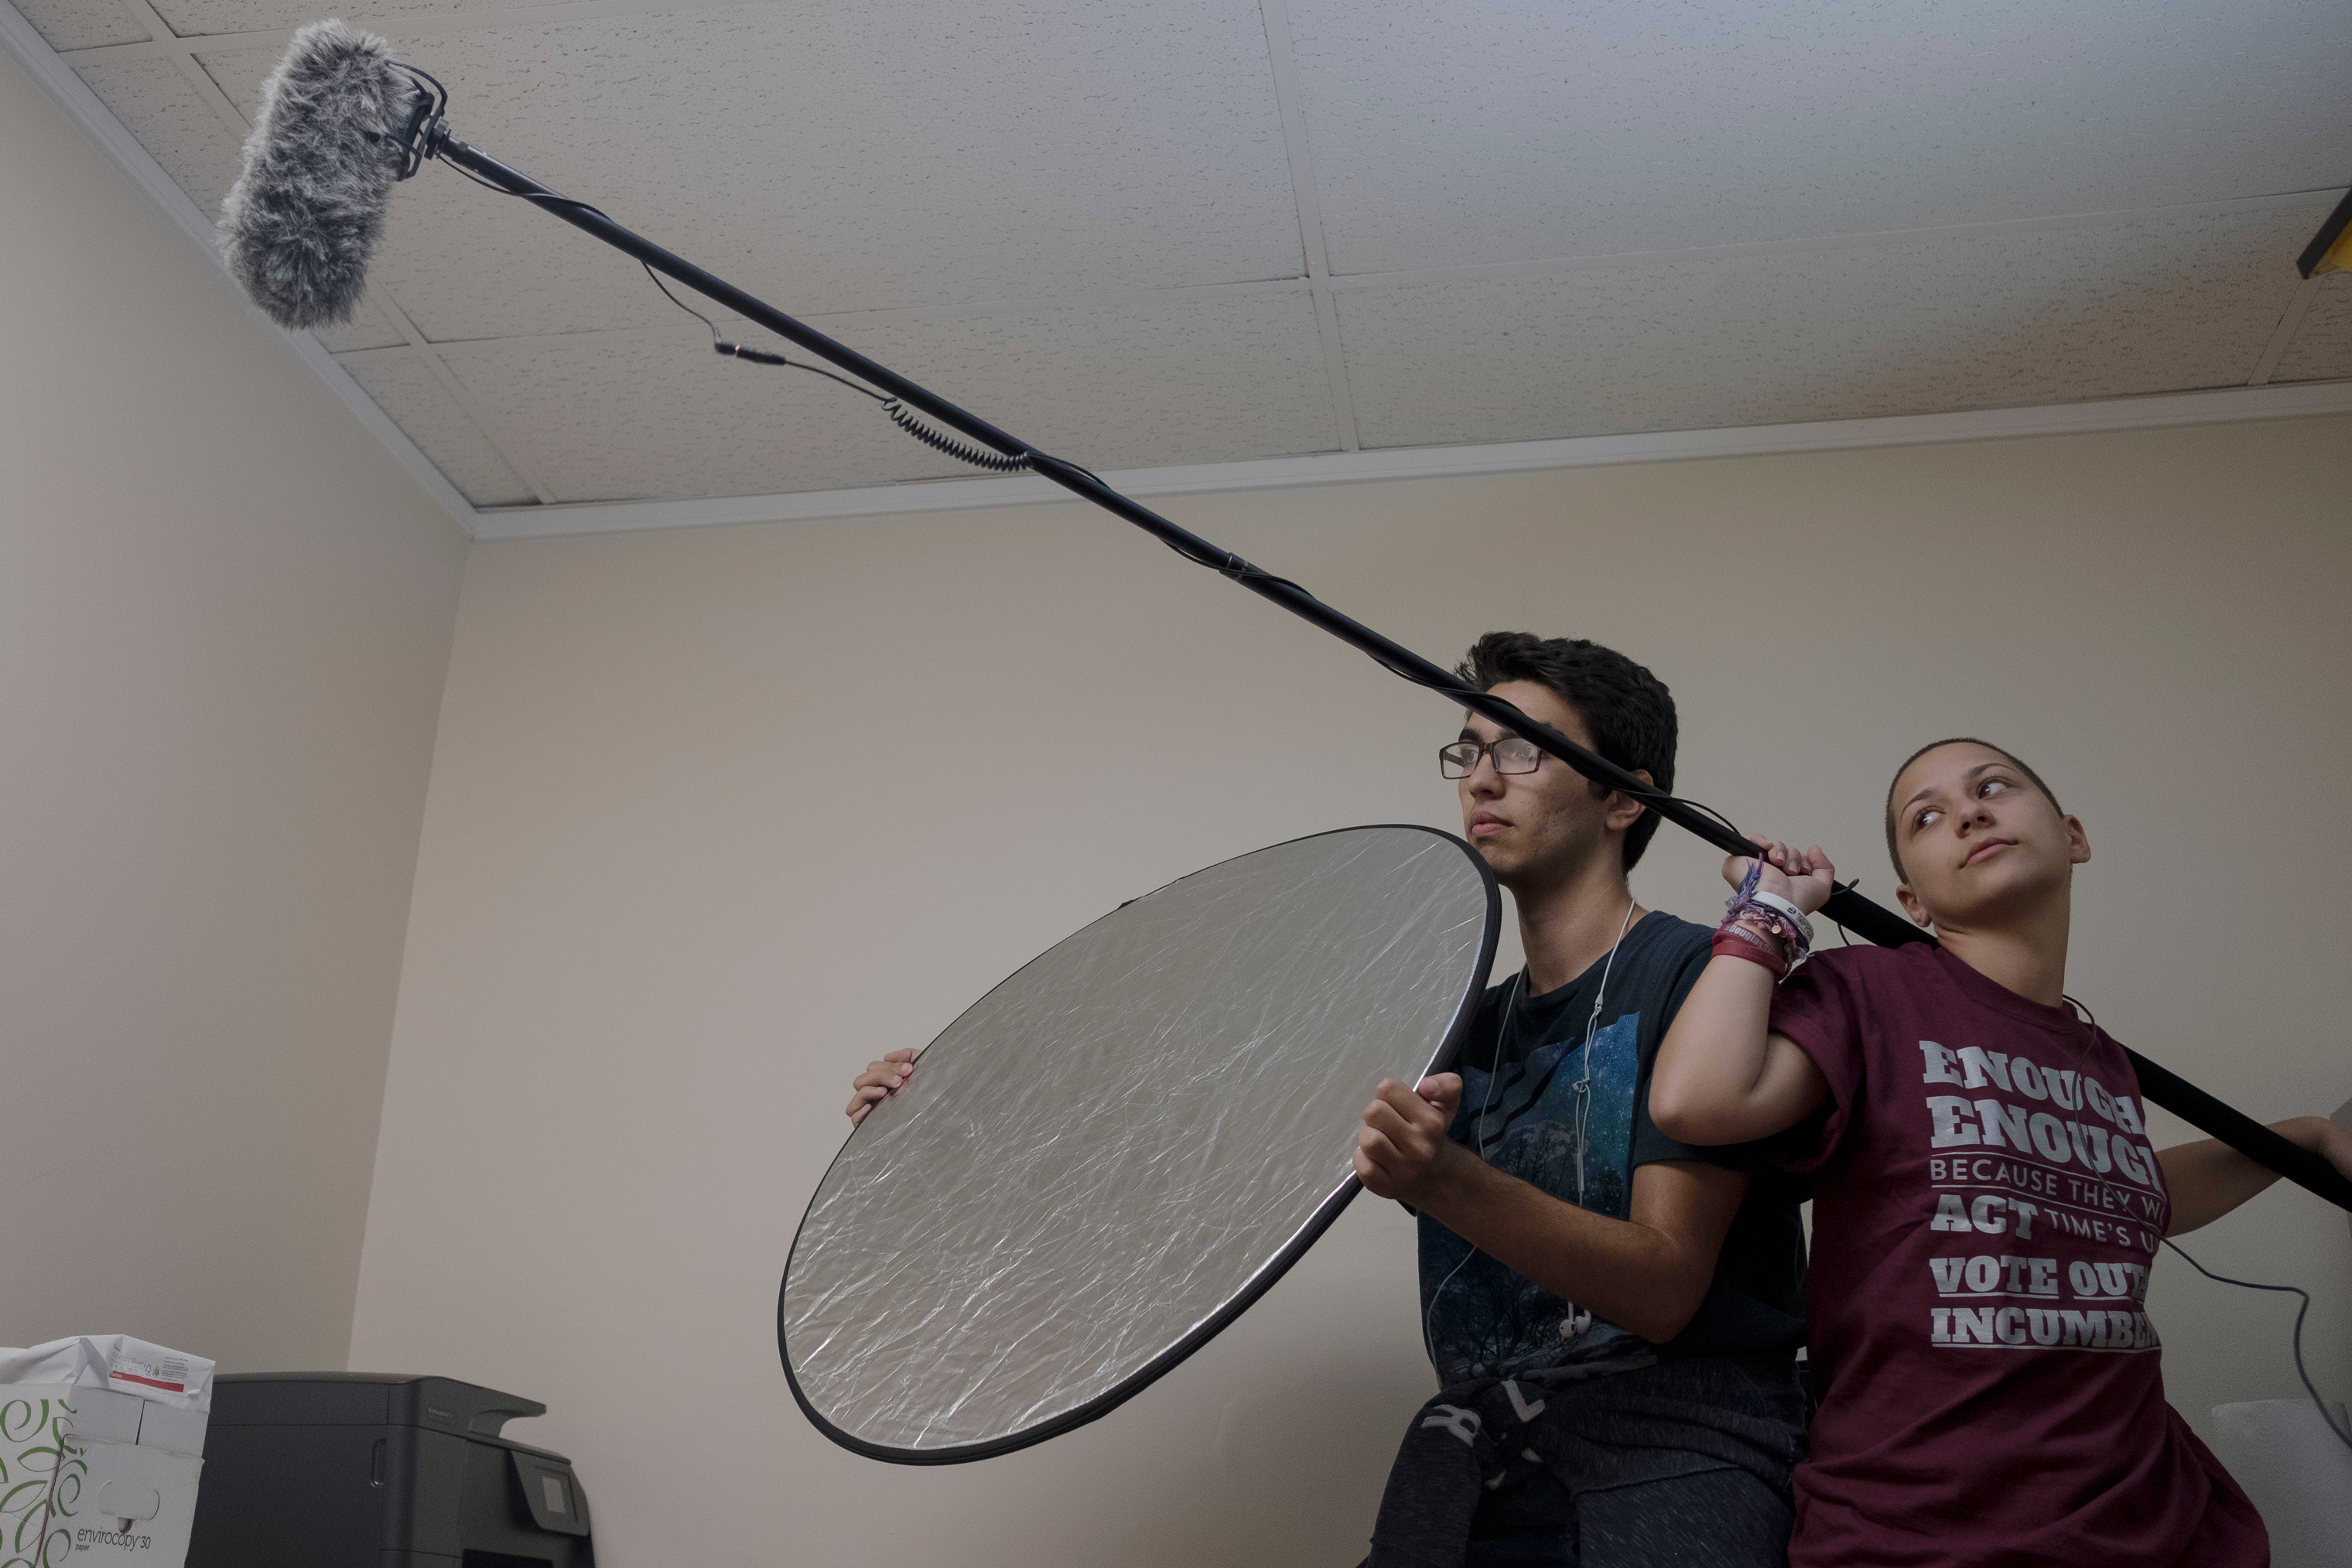 Diego Pfeiffer and Emma González record a video with their colleagues in response to the NRA's hourglass video.